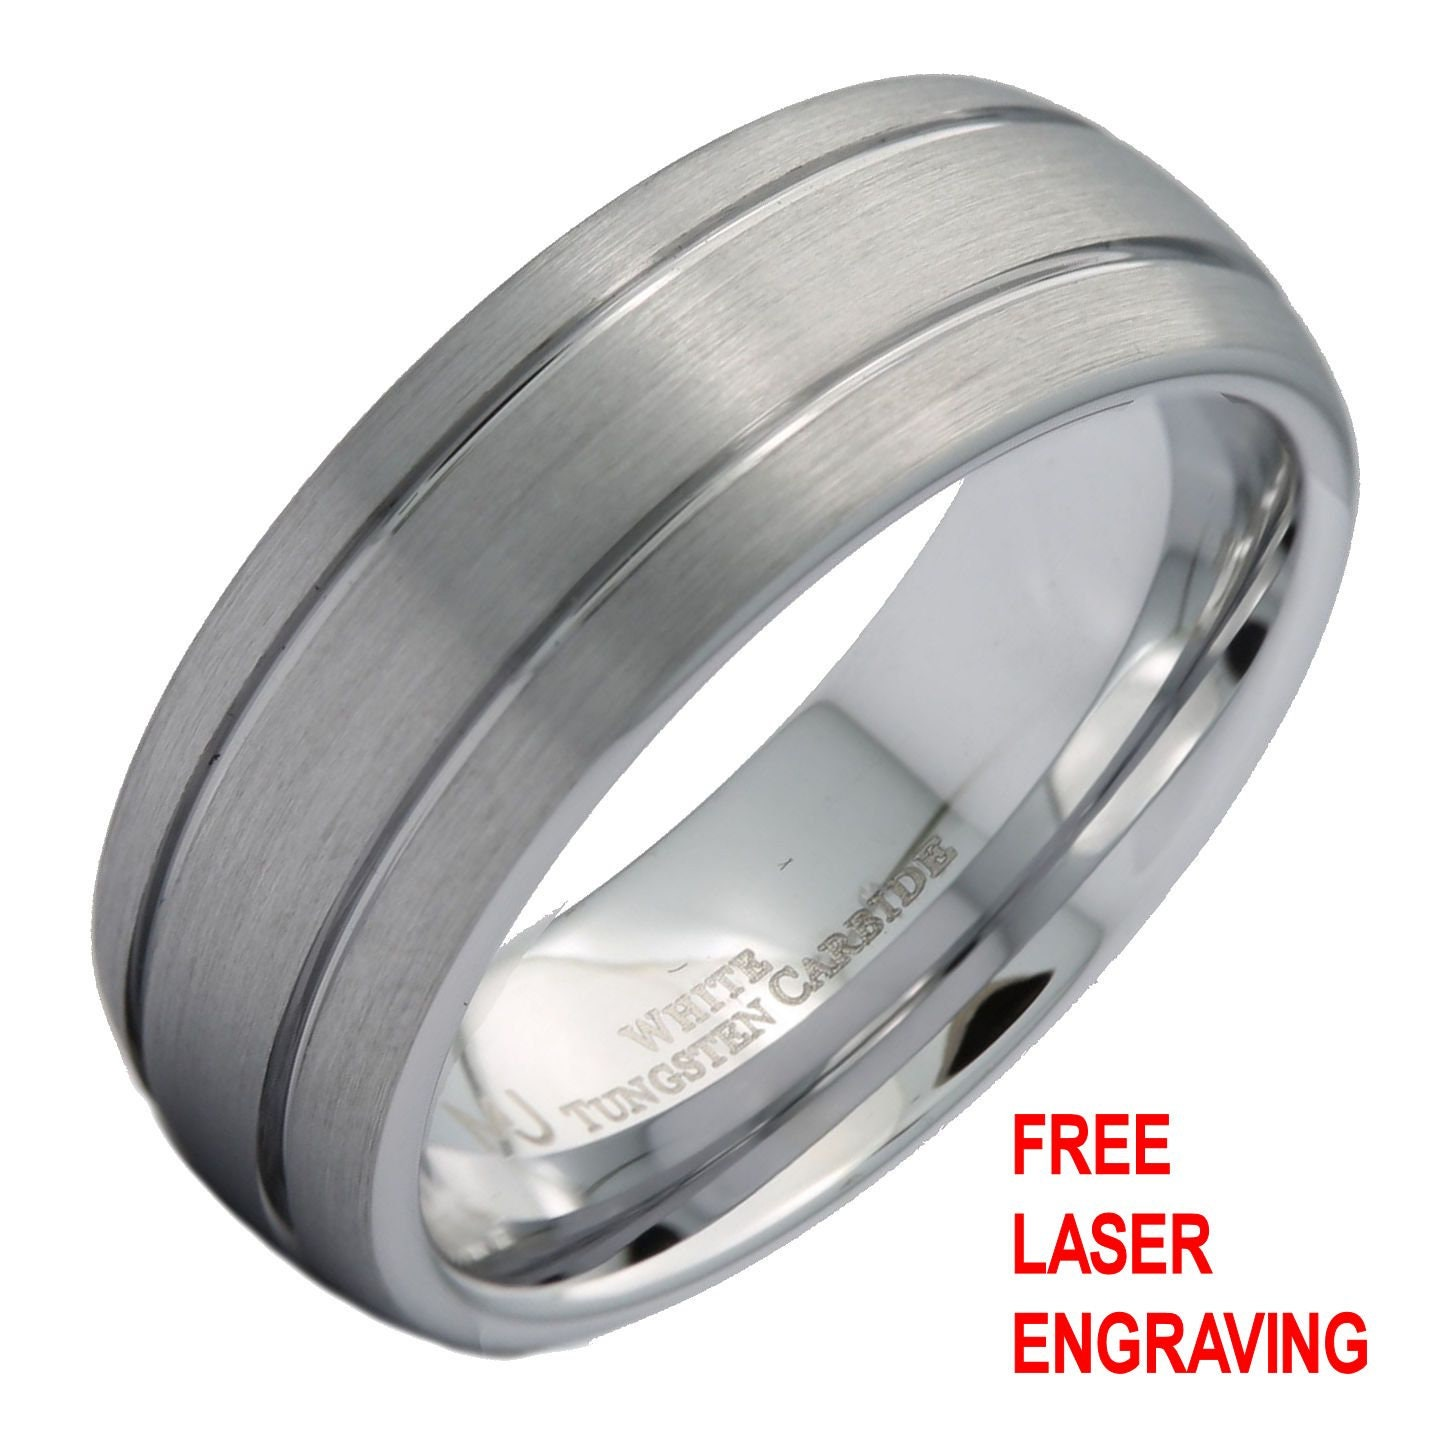 IULIUS Polished Tungsten Carbide Comfort Fit Ring 6mm /& 8mm